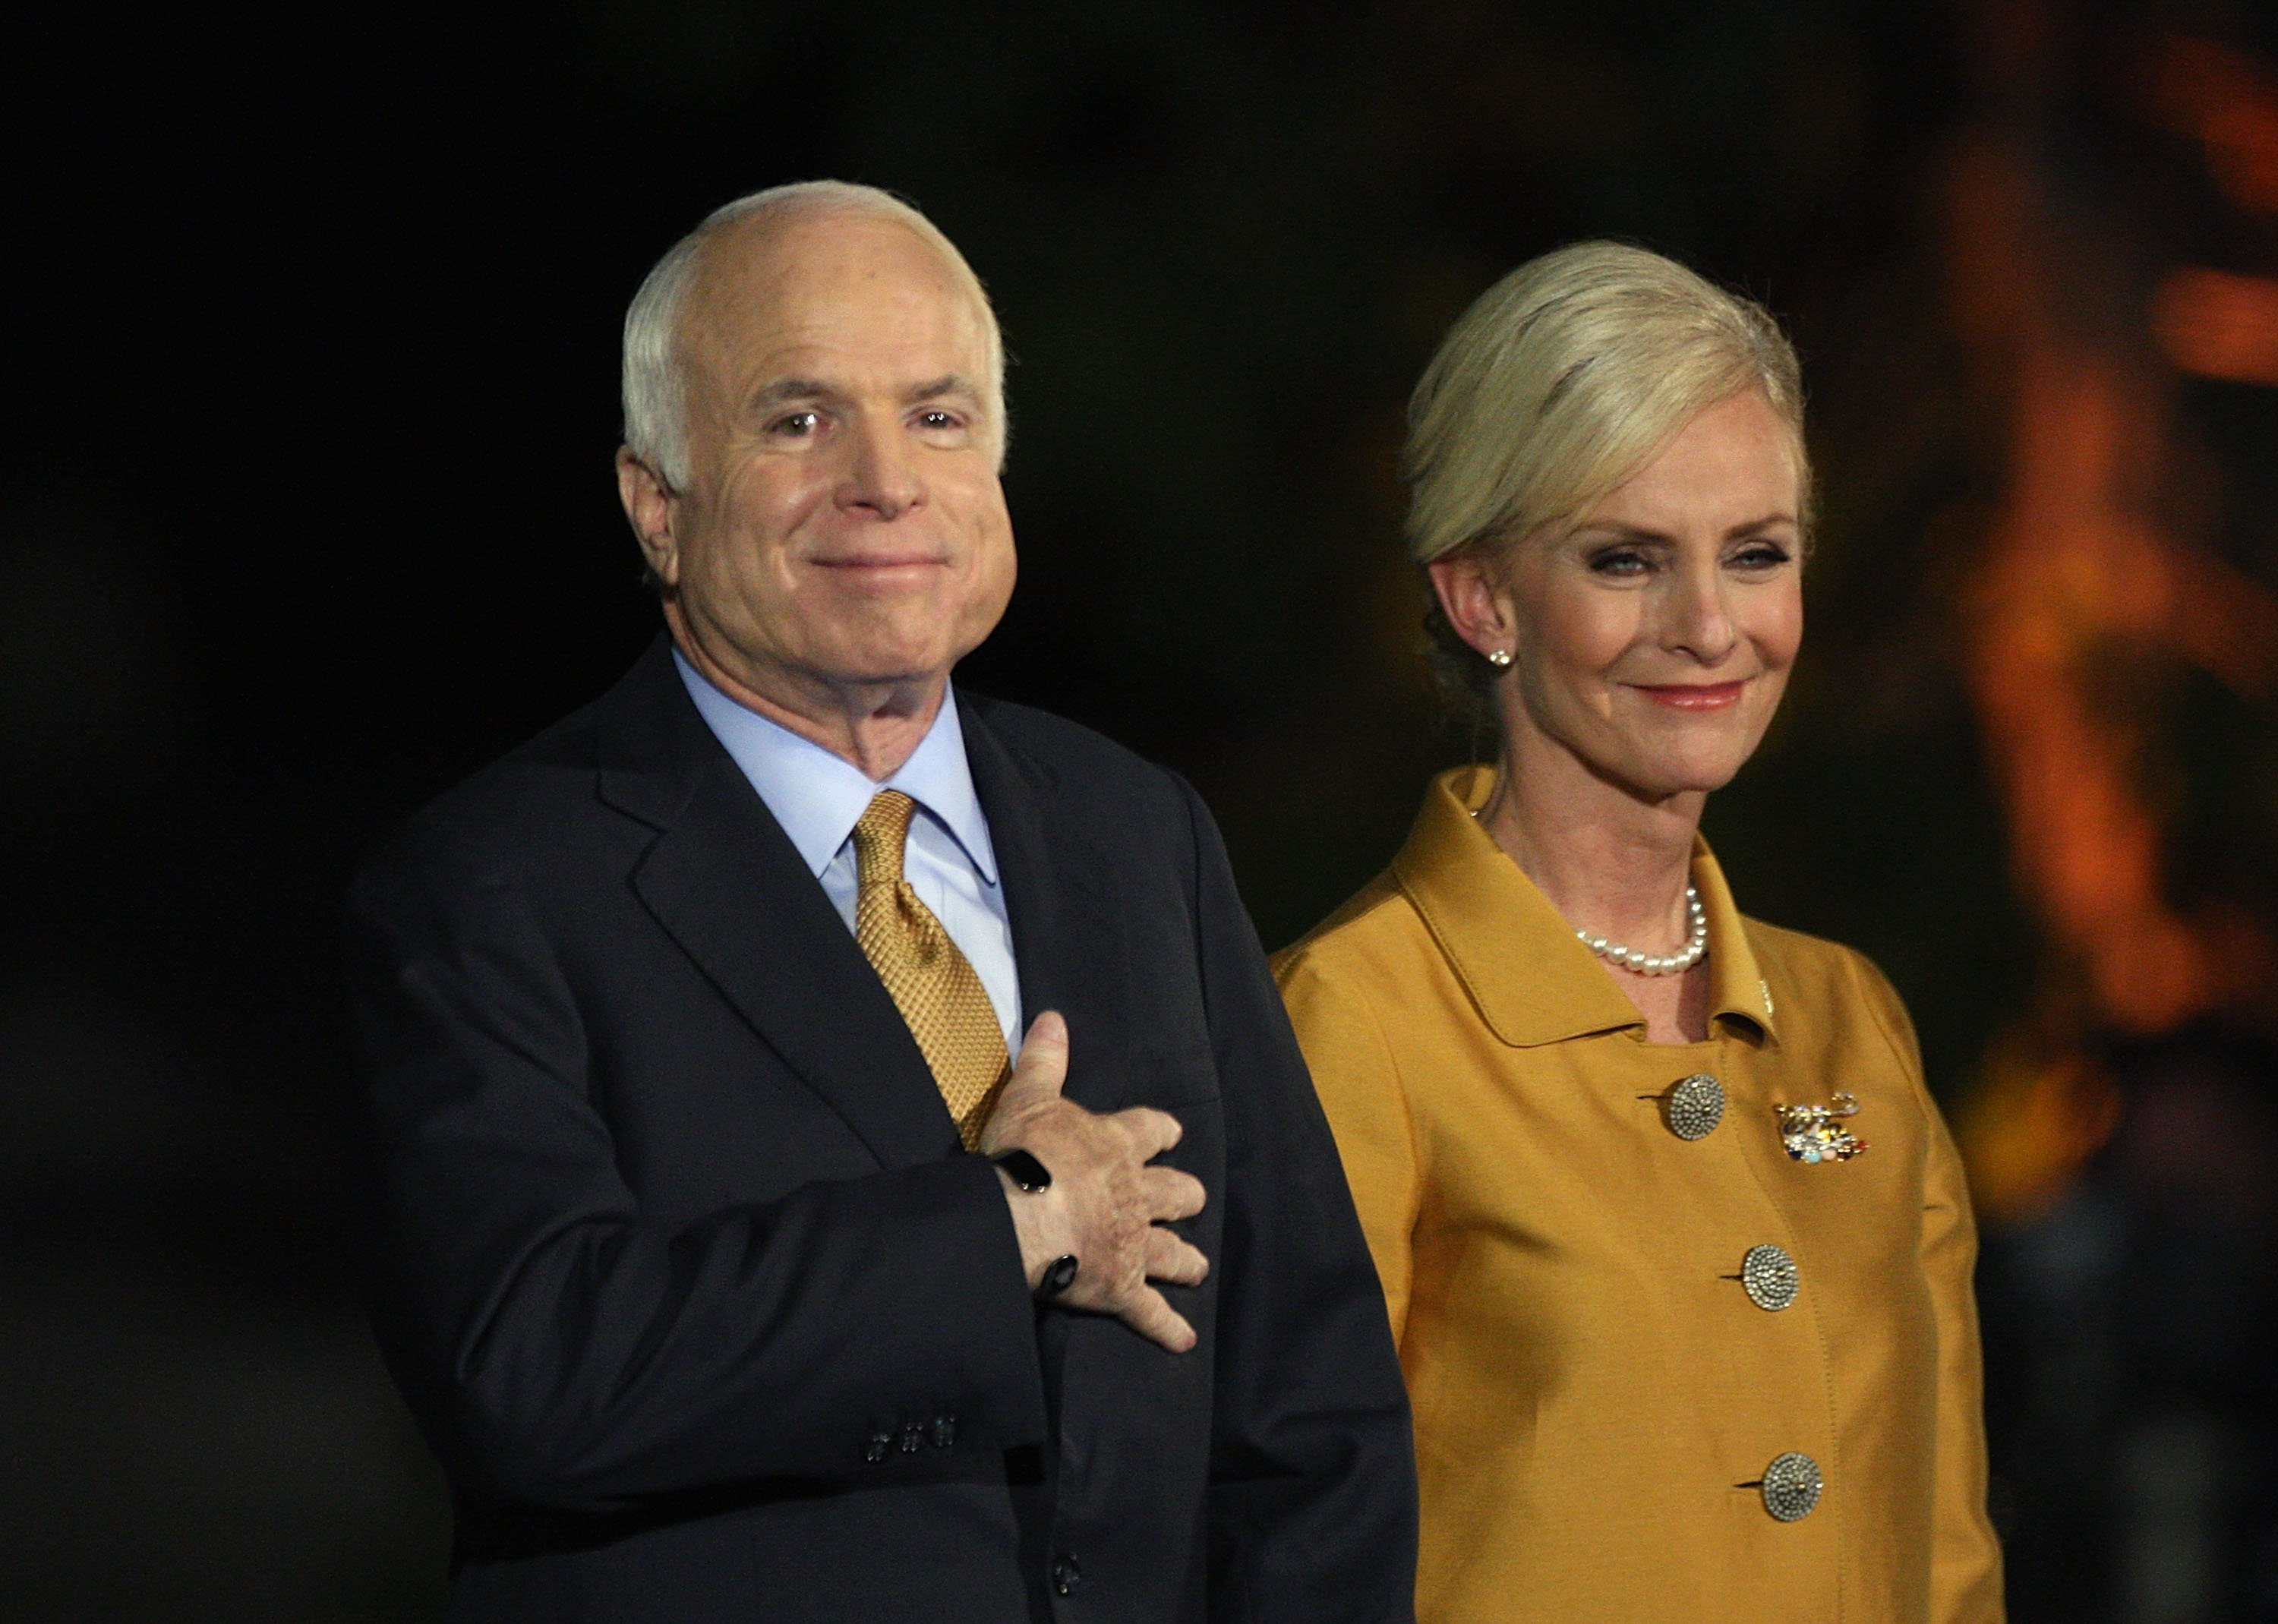 John McCain conceding victory on stage with his wife Cindy McCain during the election night rally at the Arizona Biltmore Resort & Spa on November 4, 2008 in Phoenix, Arizona | Photo: Getty Images